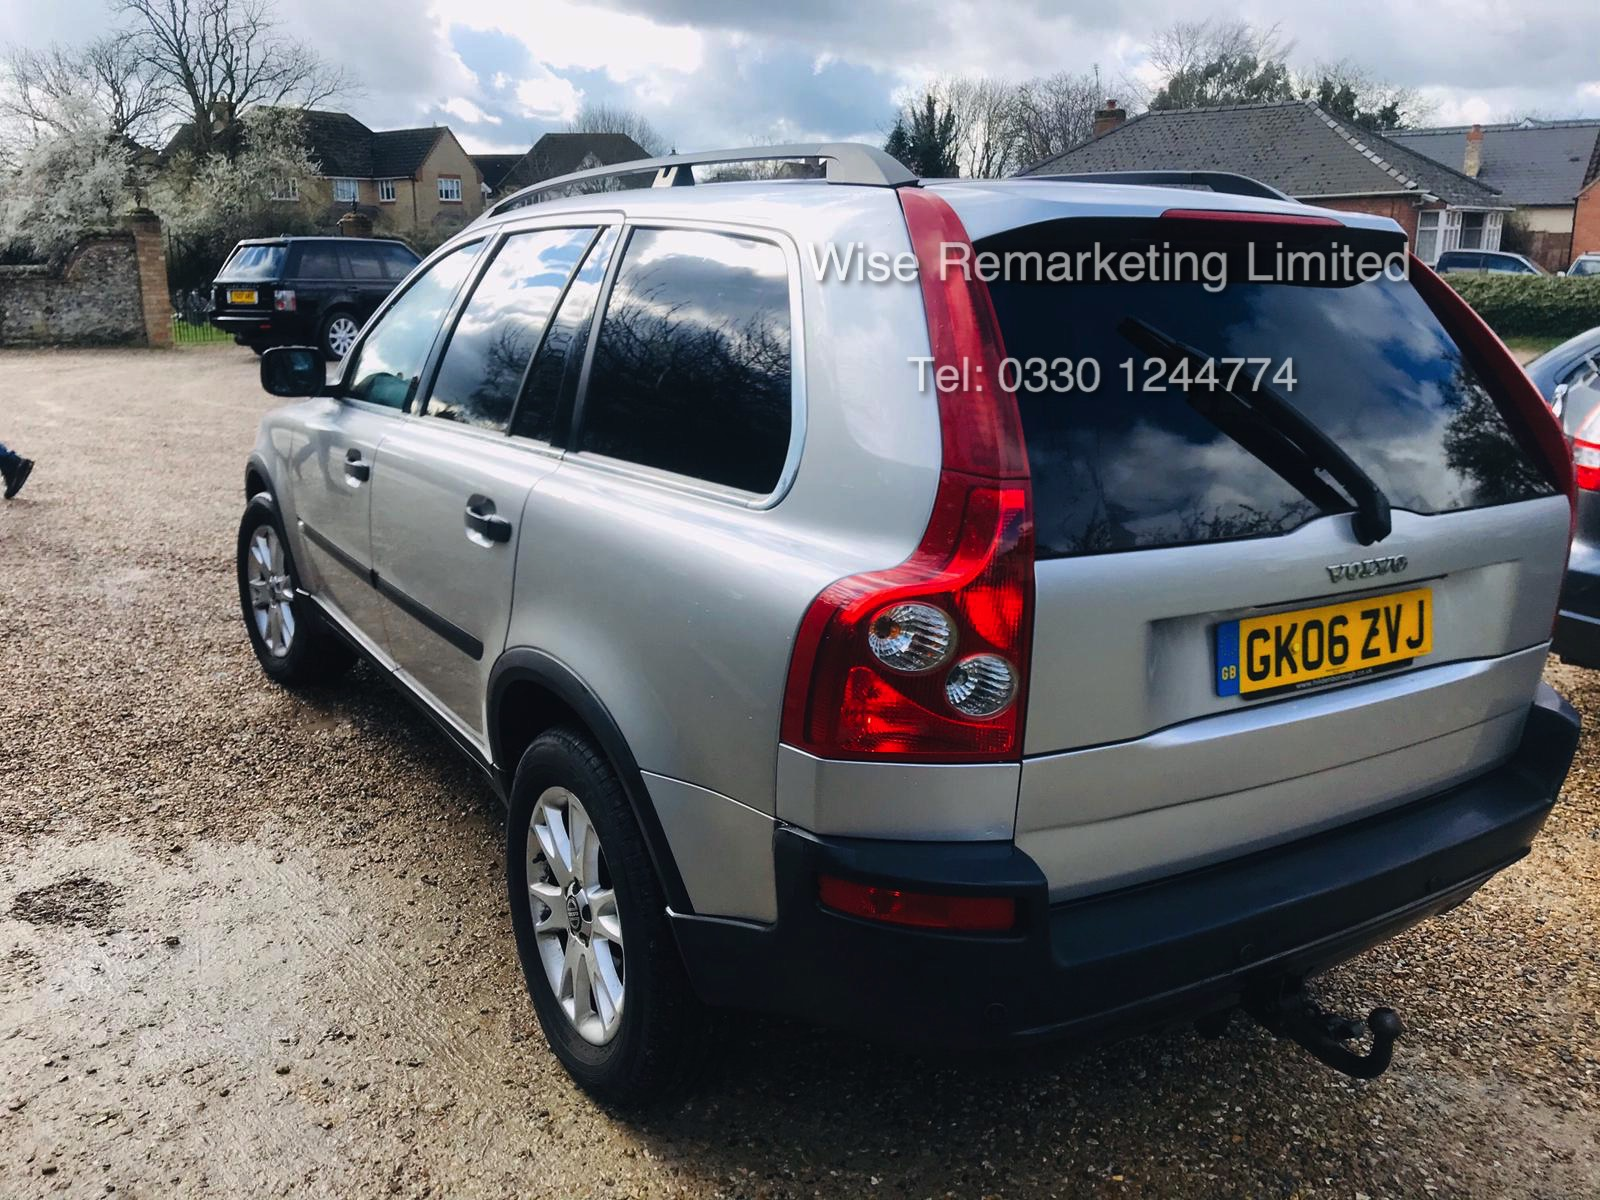 Volvo XC90 2.4 D5 Special Equipment Geartronic - 2006 06 Reg - Service History - 7 Seats - Sat Nav - Image 5 of 27